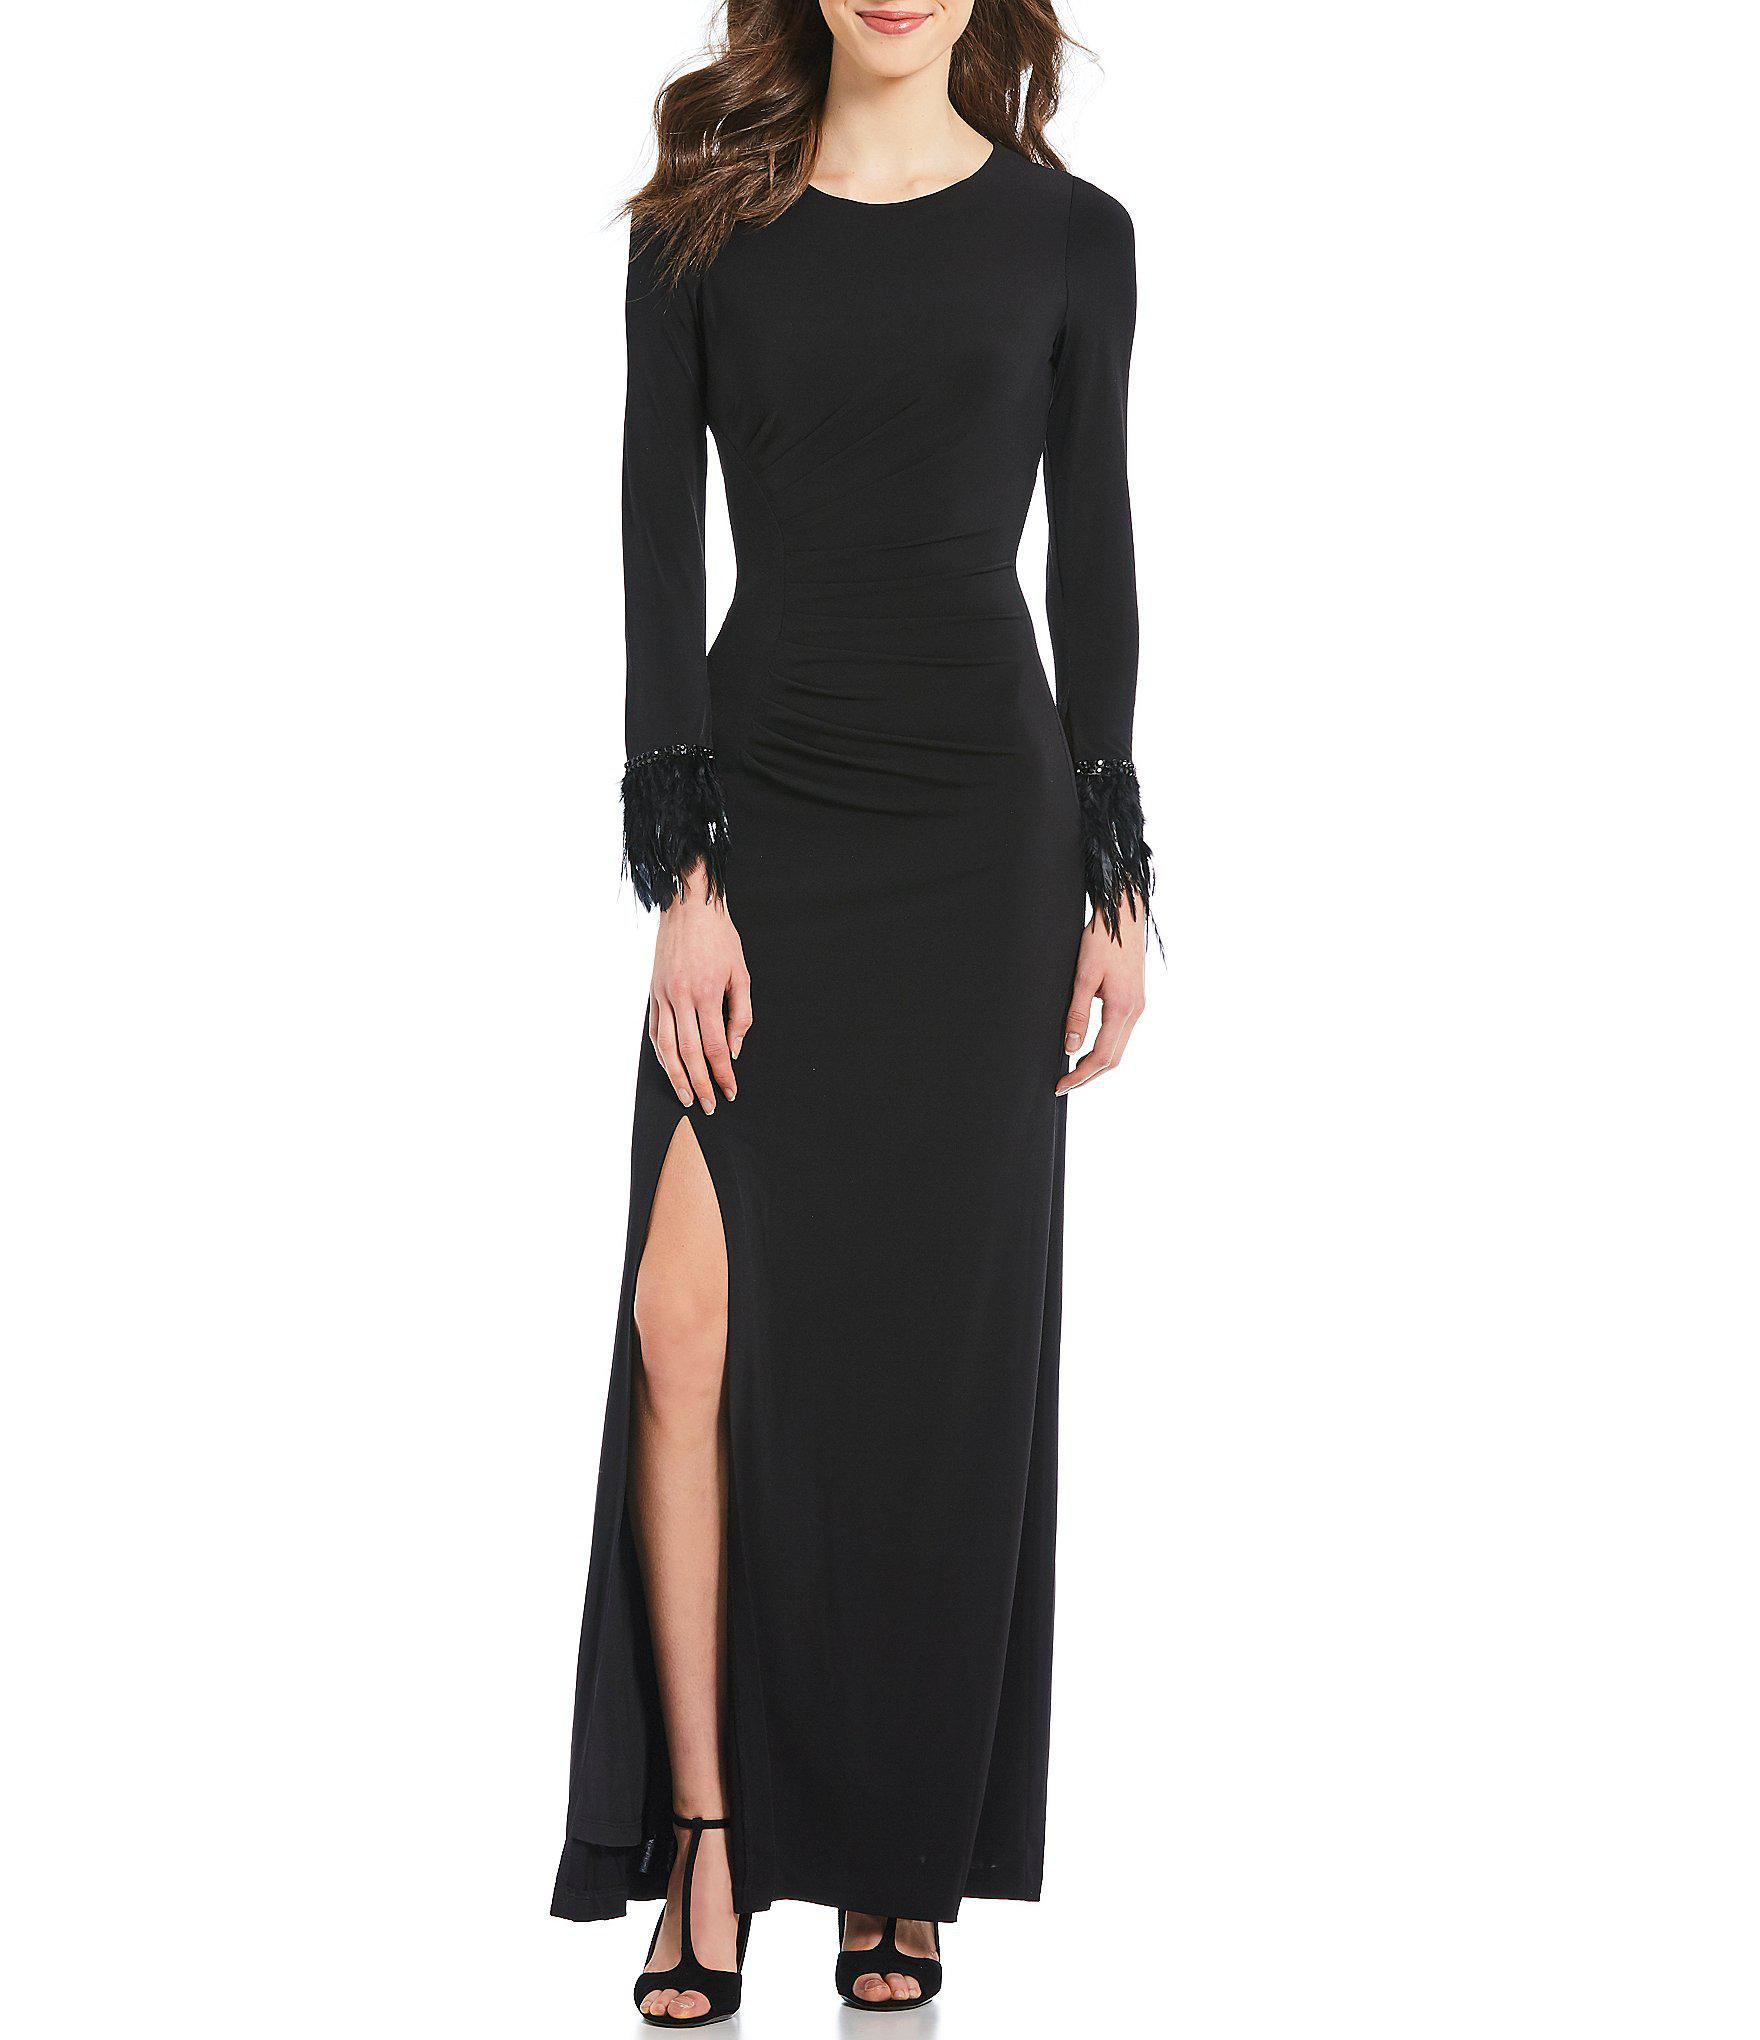 6a85cc62b41 Calvin Klein Side Slit Faux Feather Cuff Gown in Black - Lyst